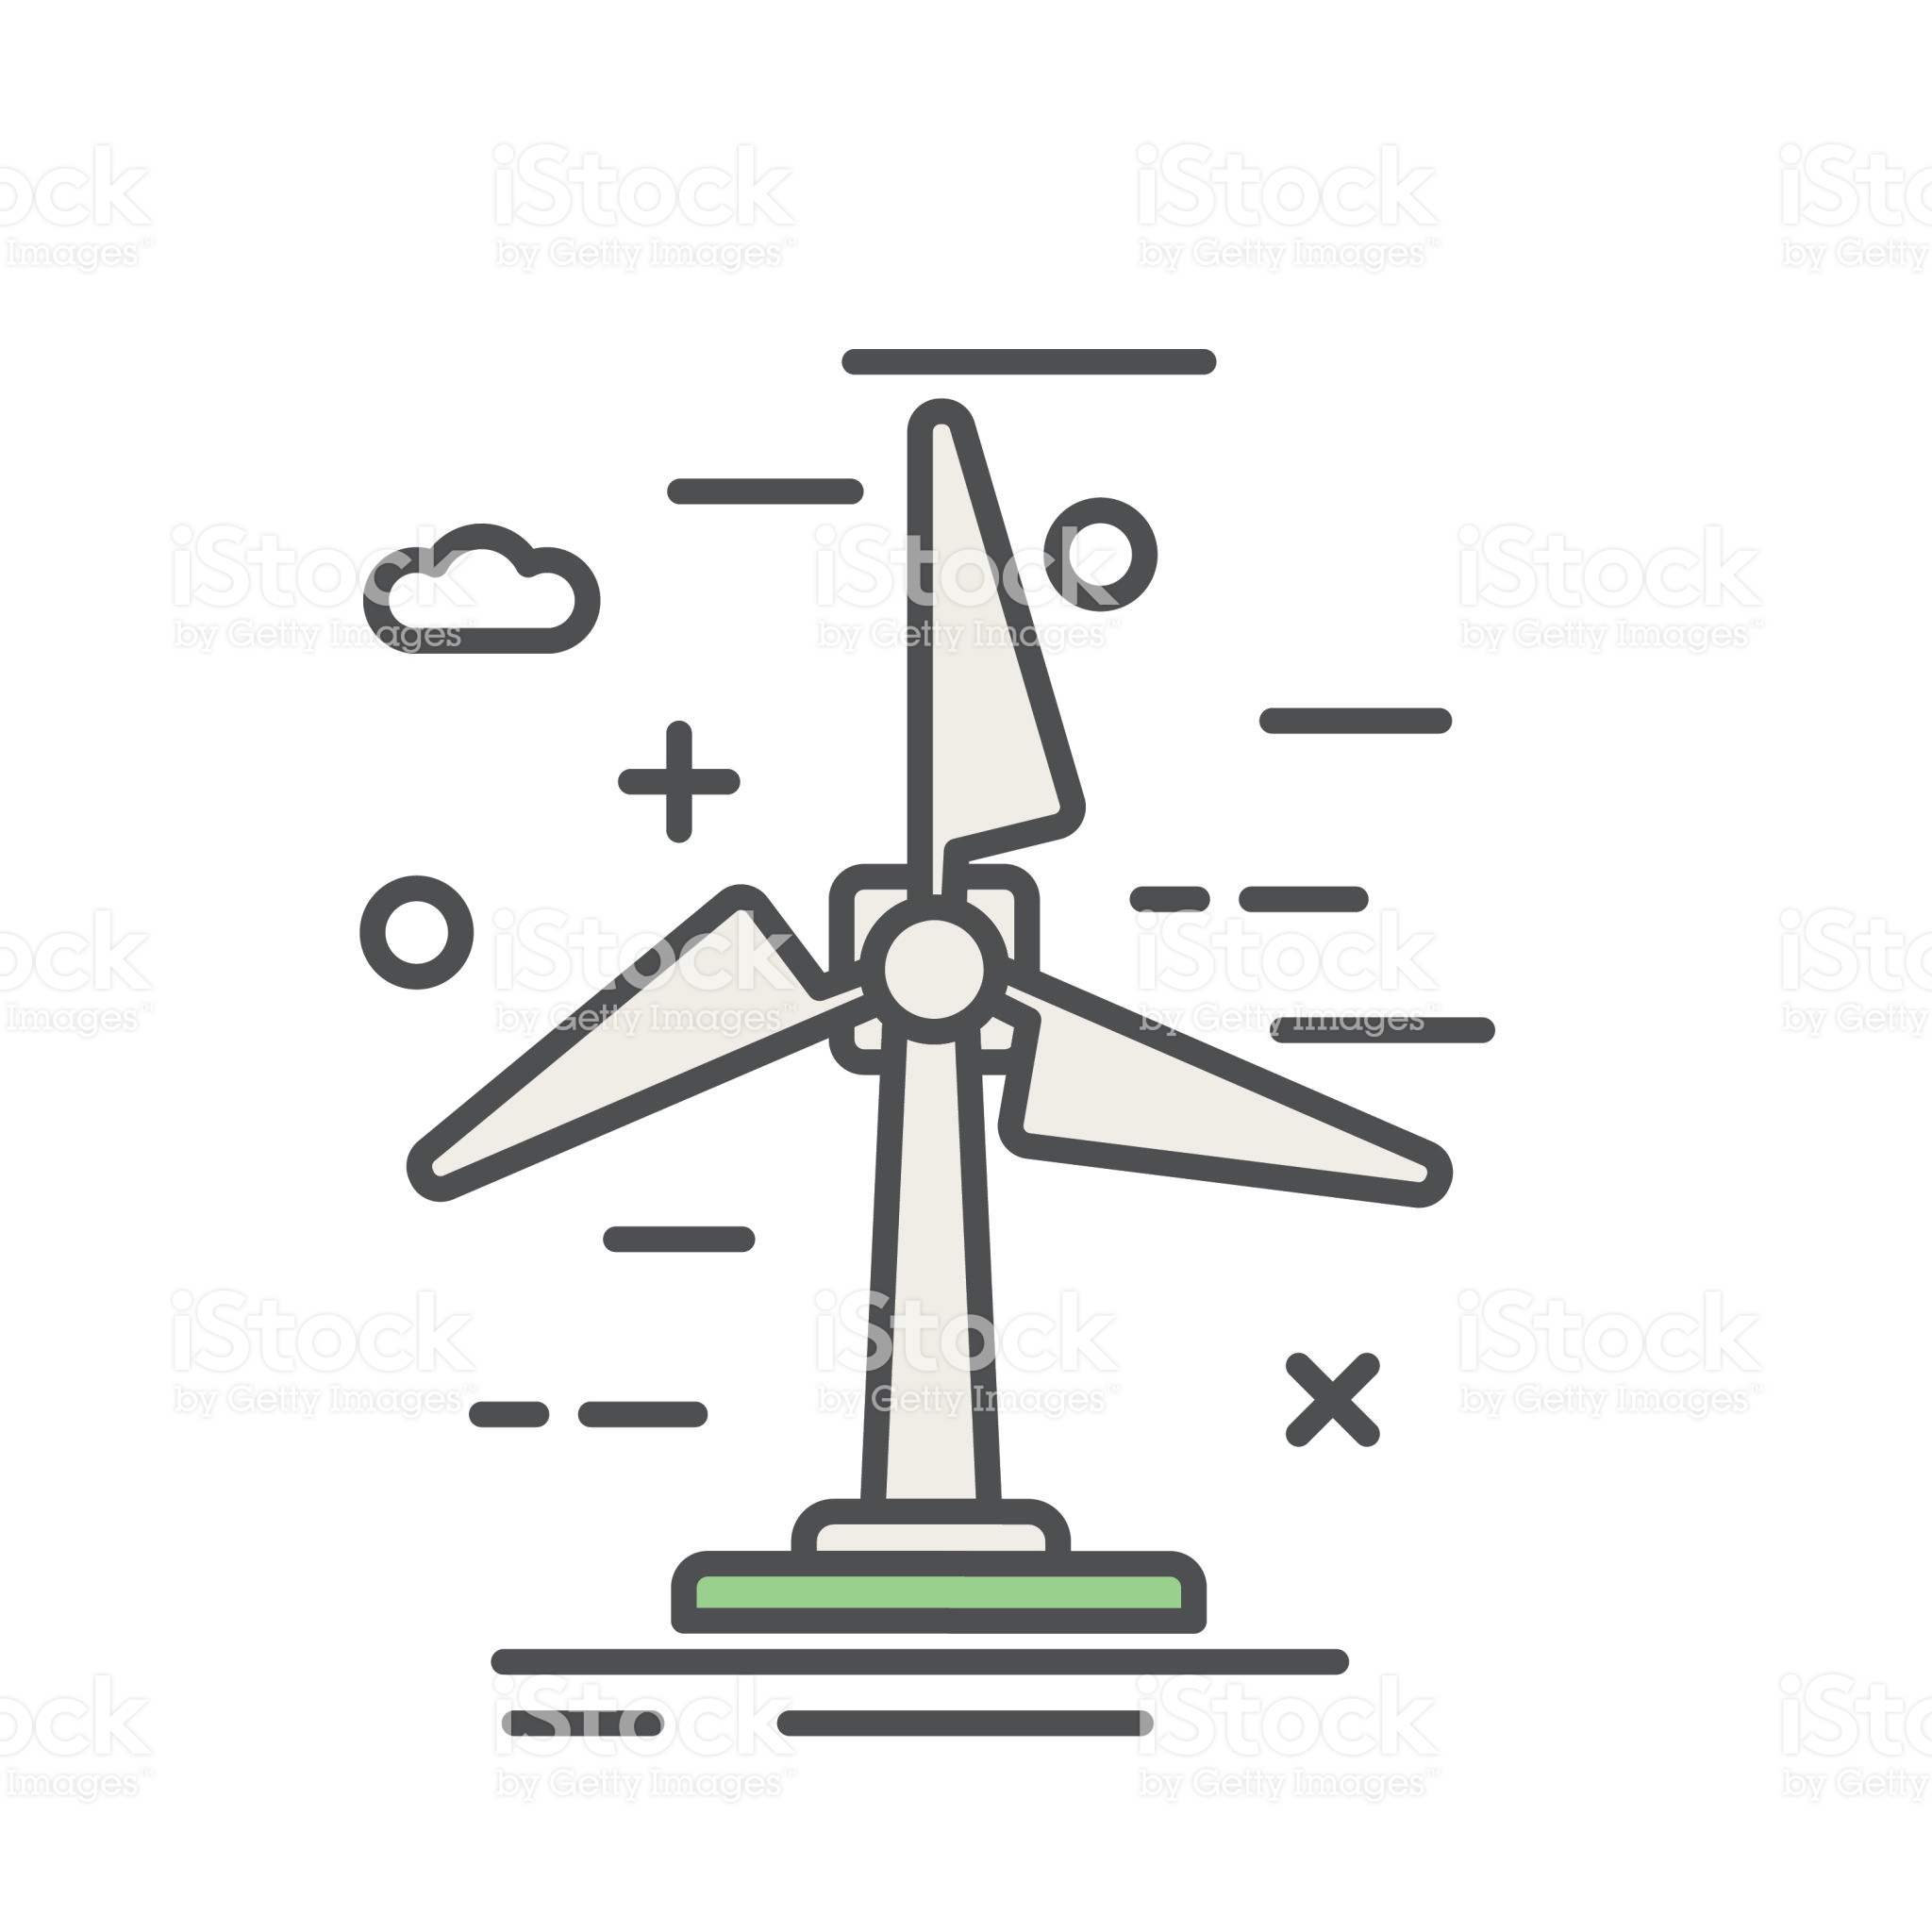 Wind Turbine Environment Icon In Thin Line Flat Design Style Line Icon Thin Line Energy